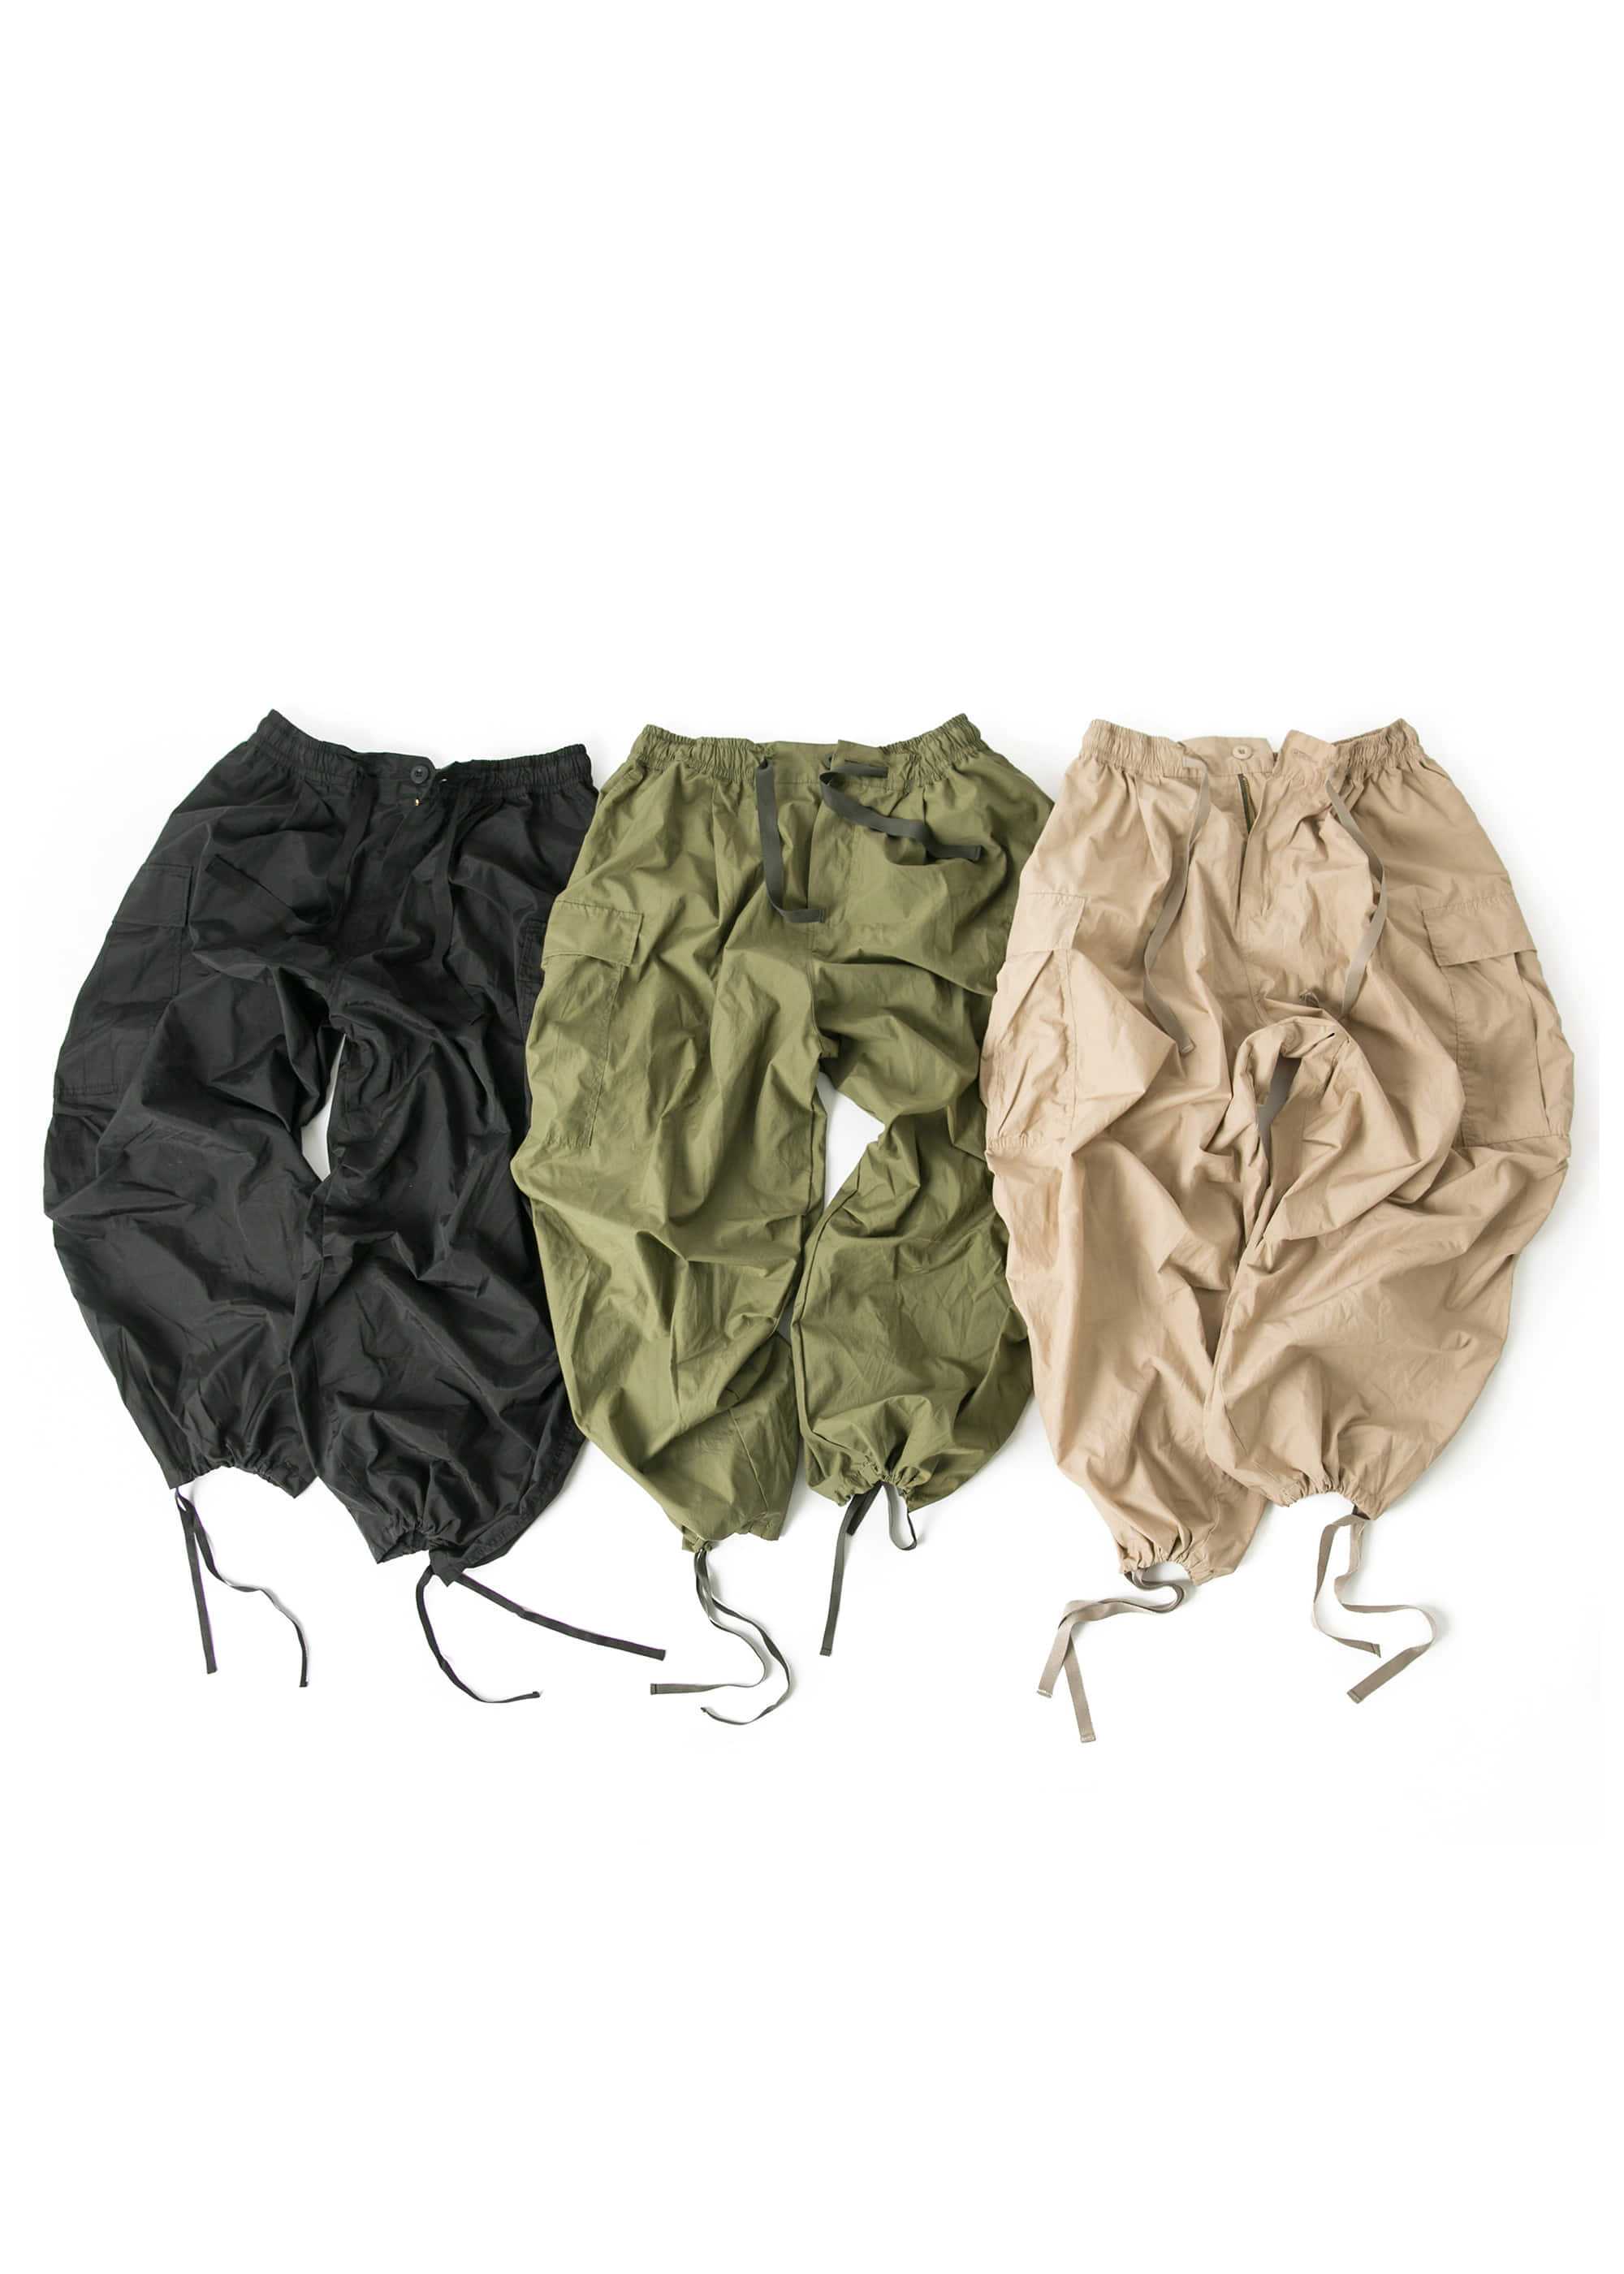 [s/s Season Item] Cargo Balloon Pants - 3color